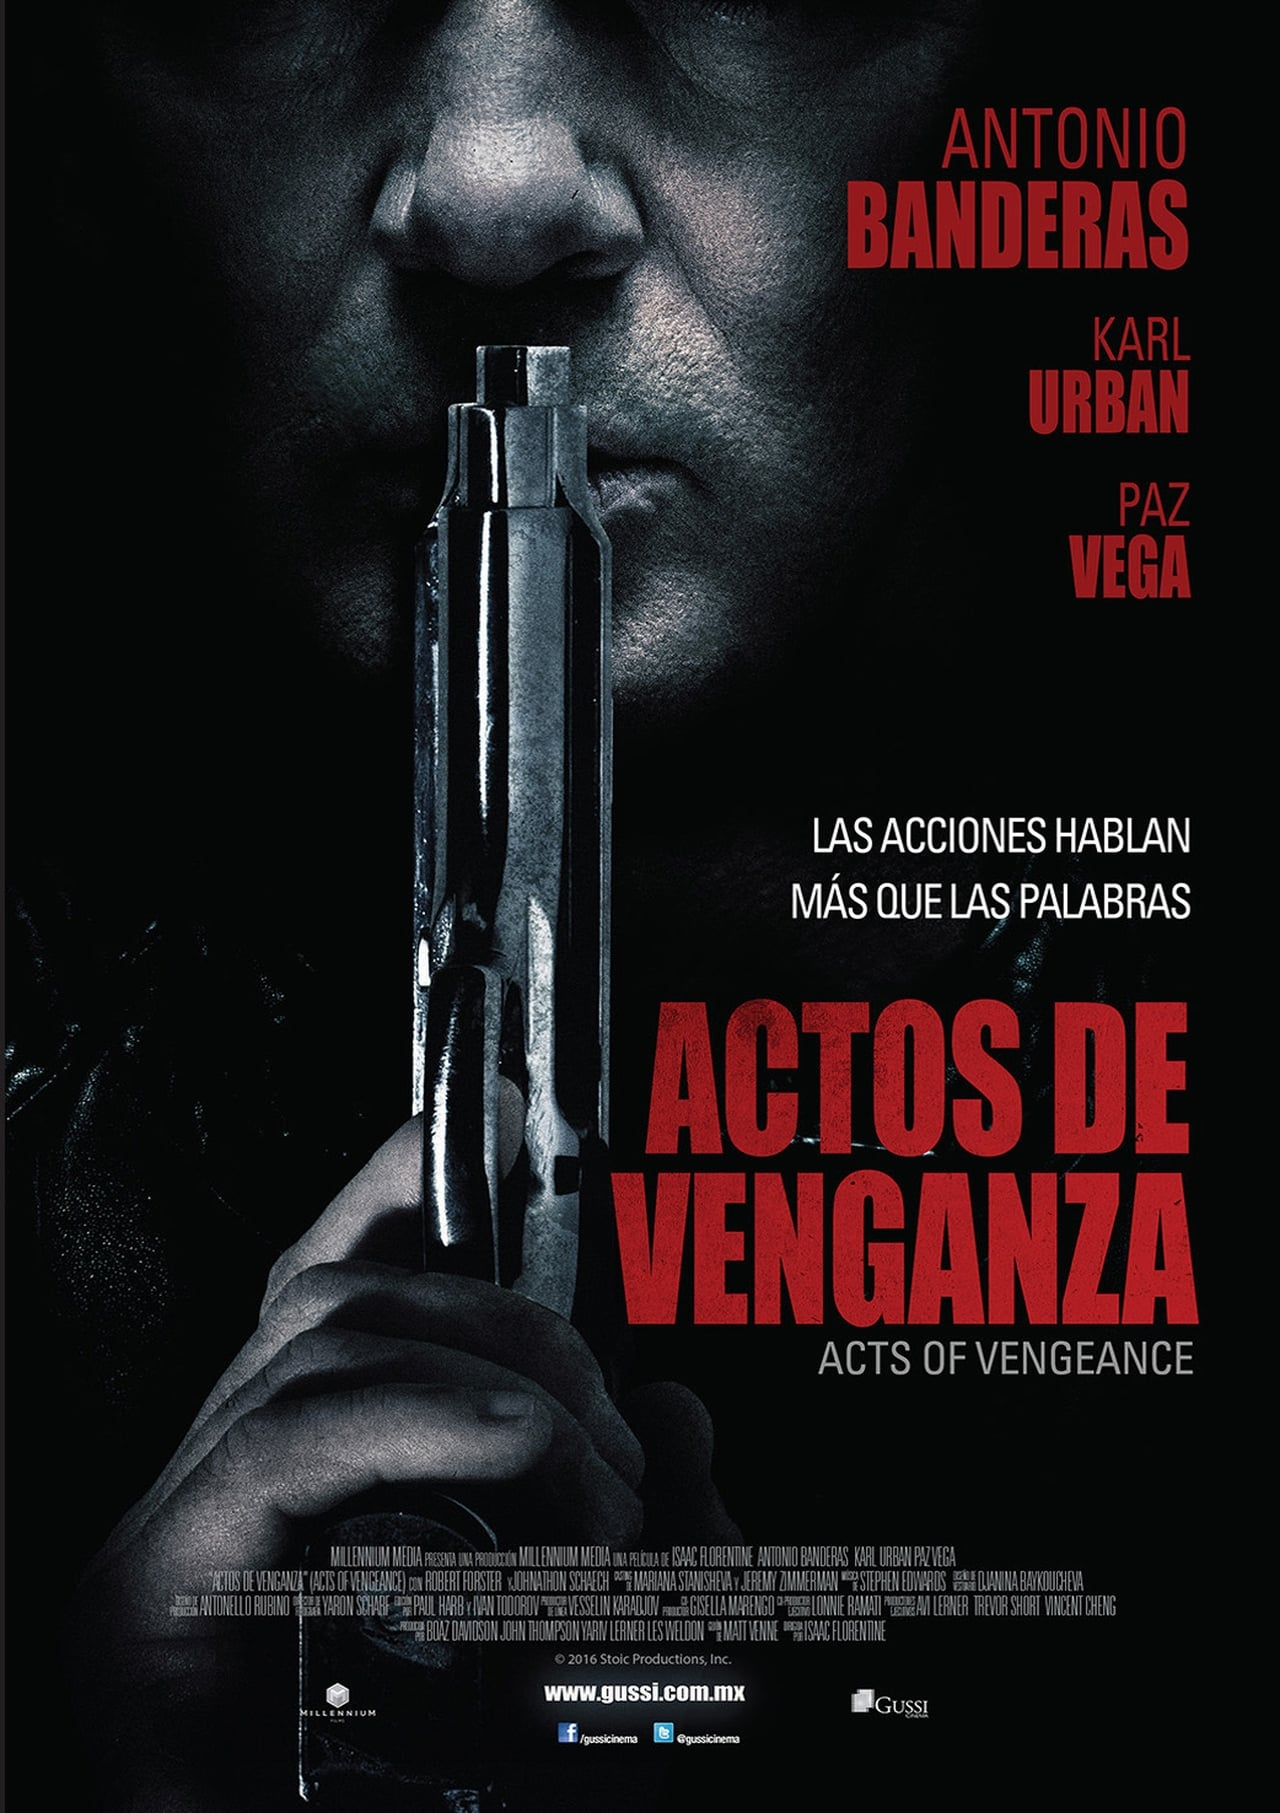 Actos de venganza ( Acts of Vengeance)